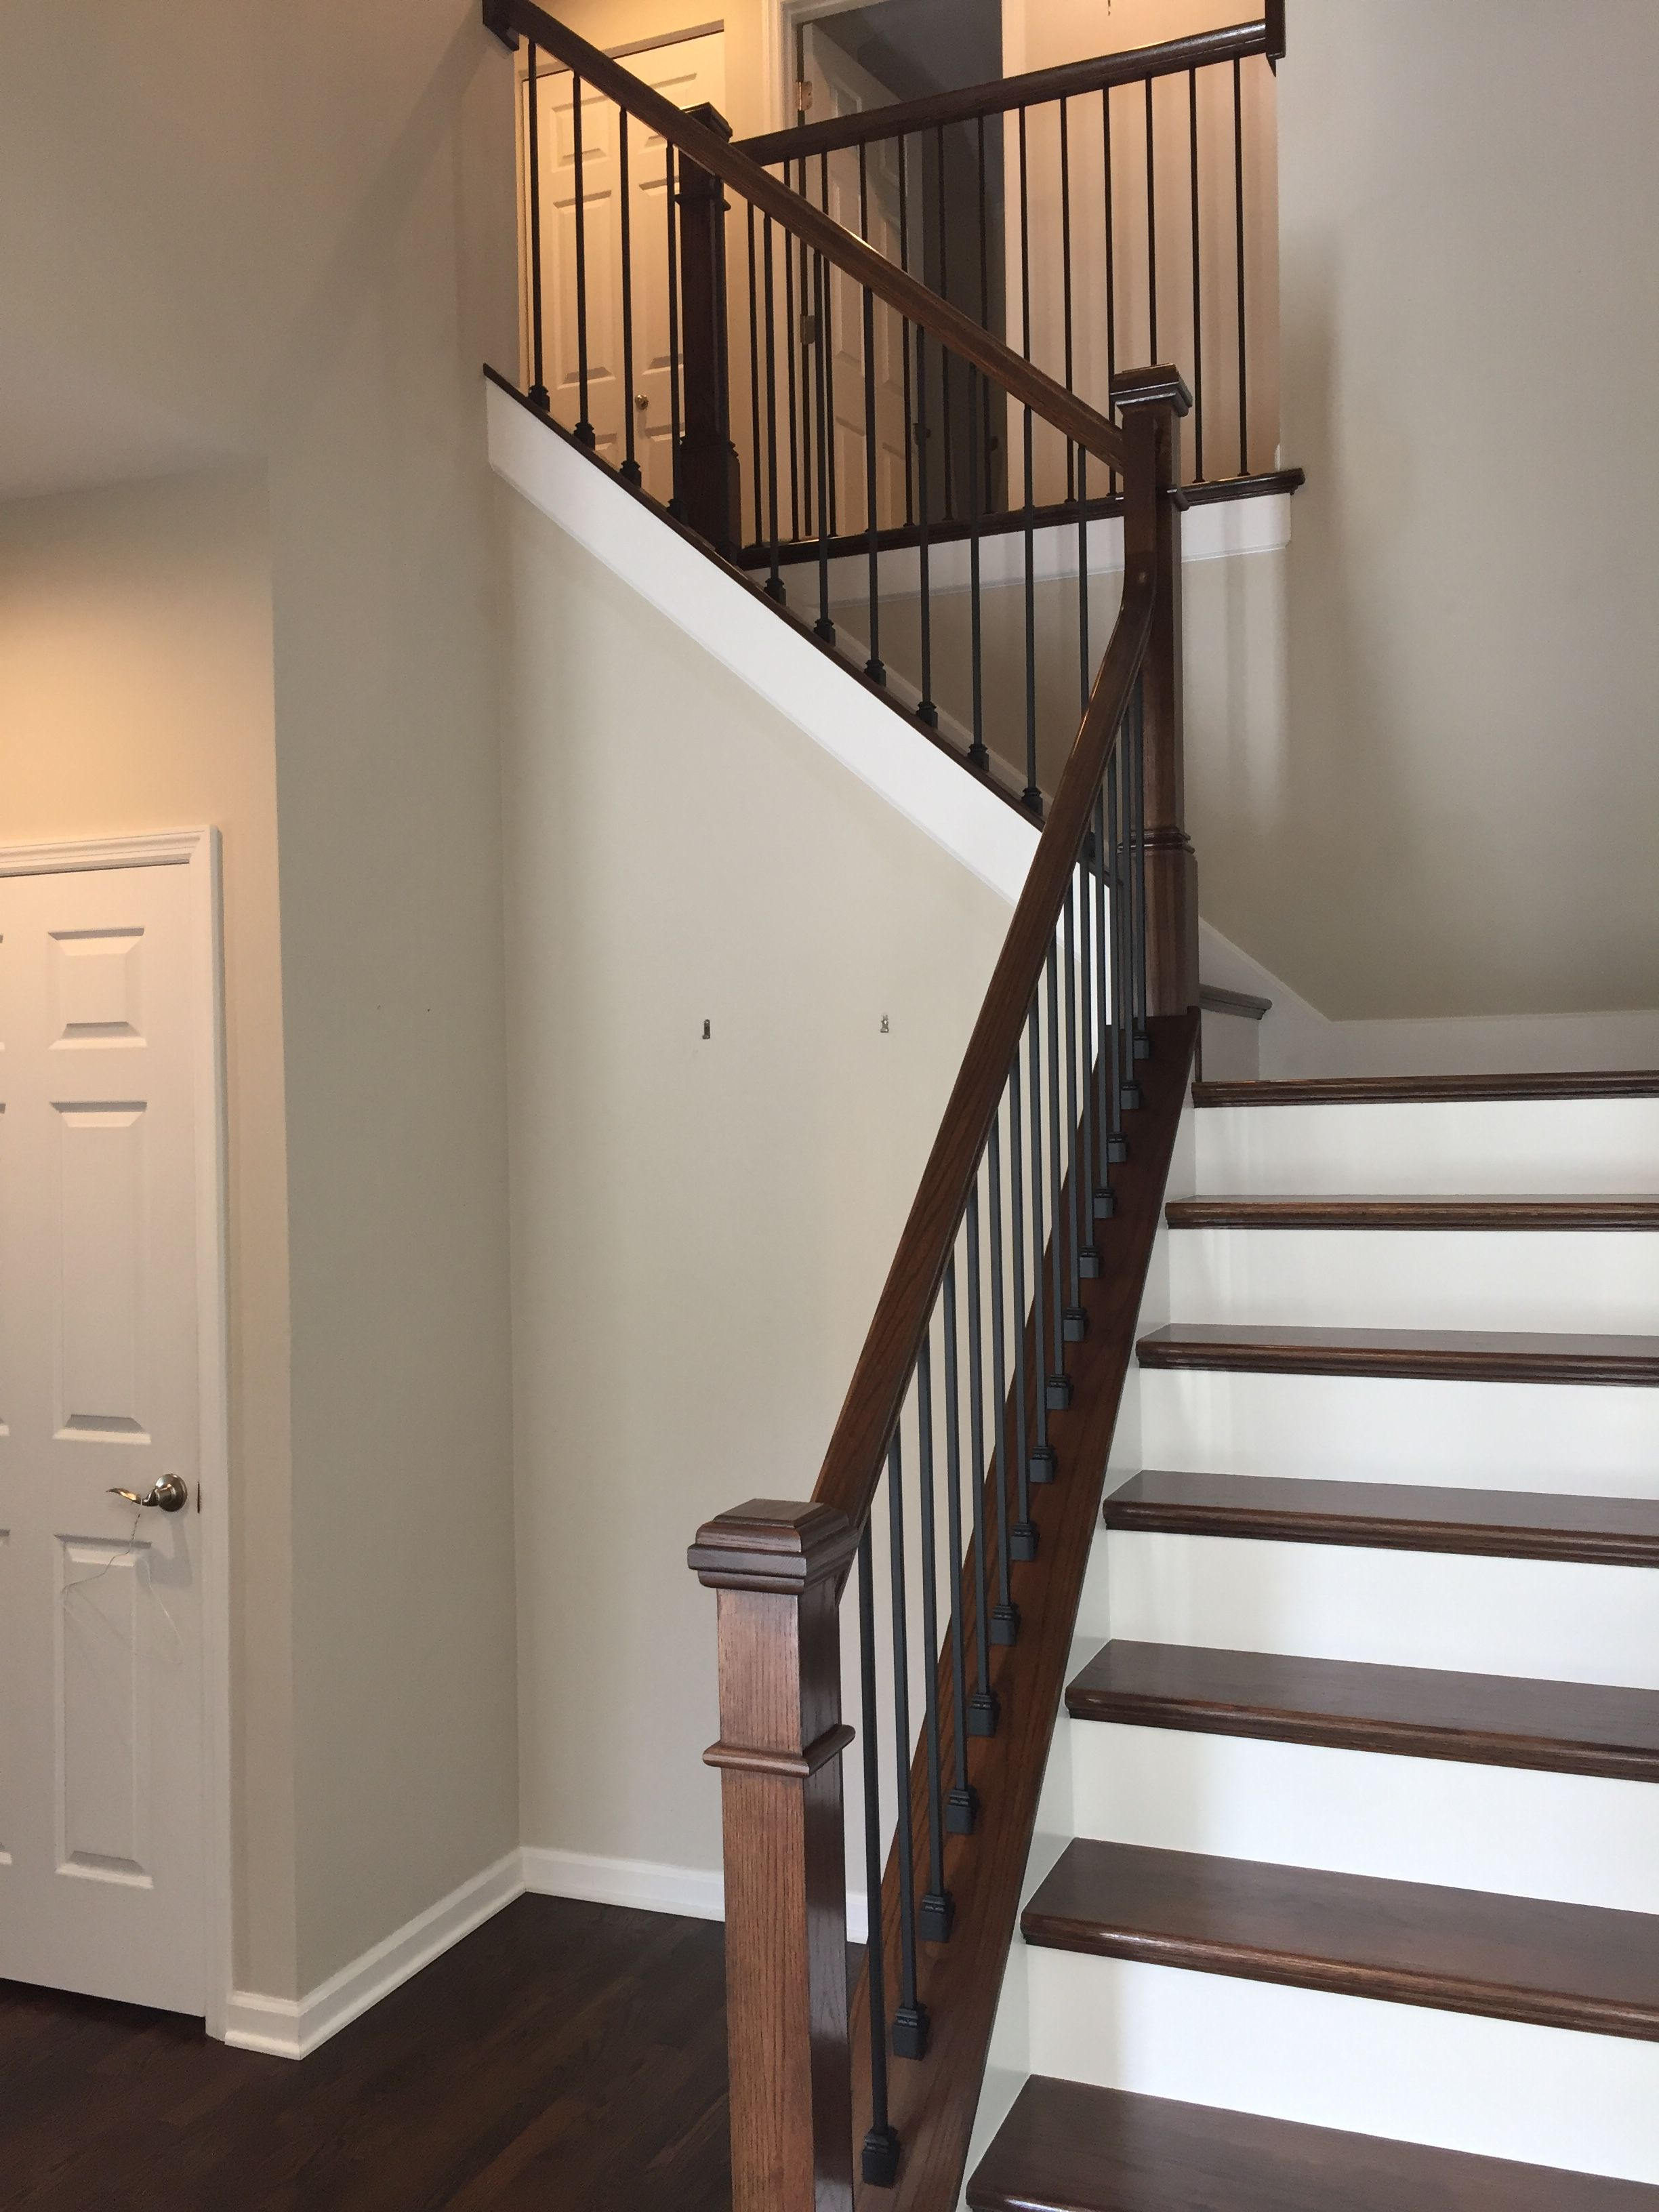 Rod Iron Staircase With Images Iron Stair Railing Staircase